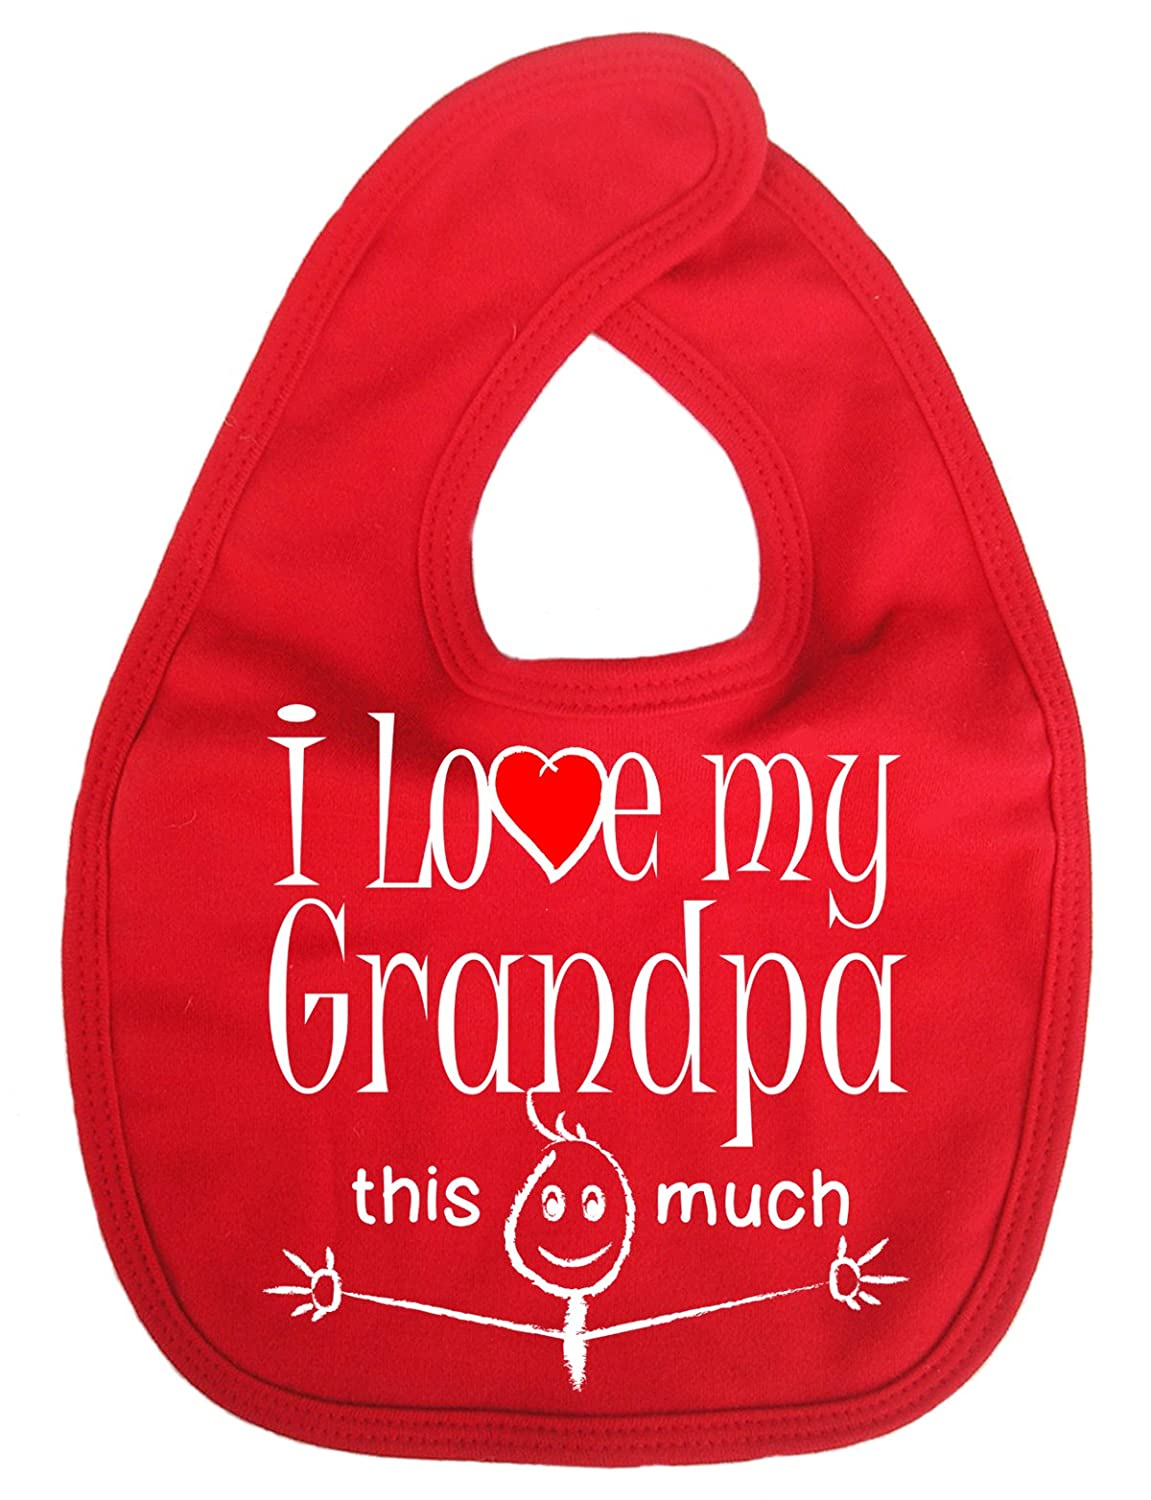 Dirty Fingers, I love my Grandpa this much, Baby Unisex Bib, White DFBIBgrandpamuchW